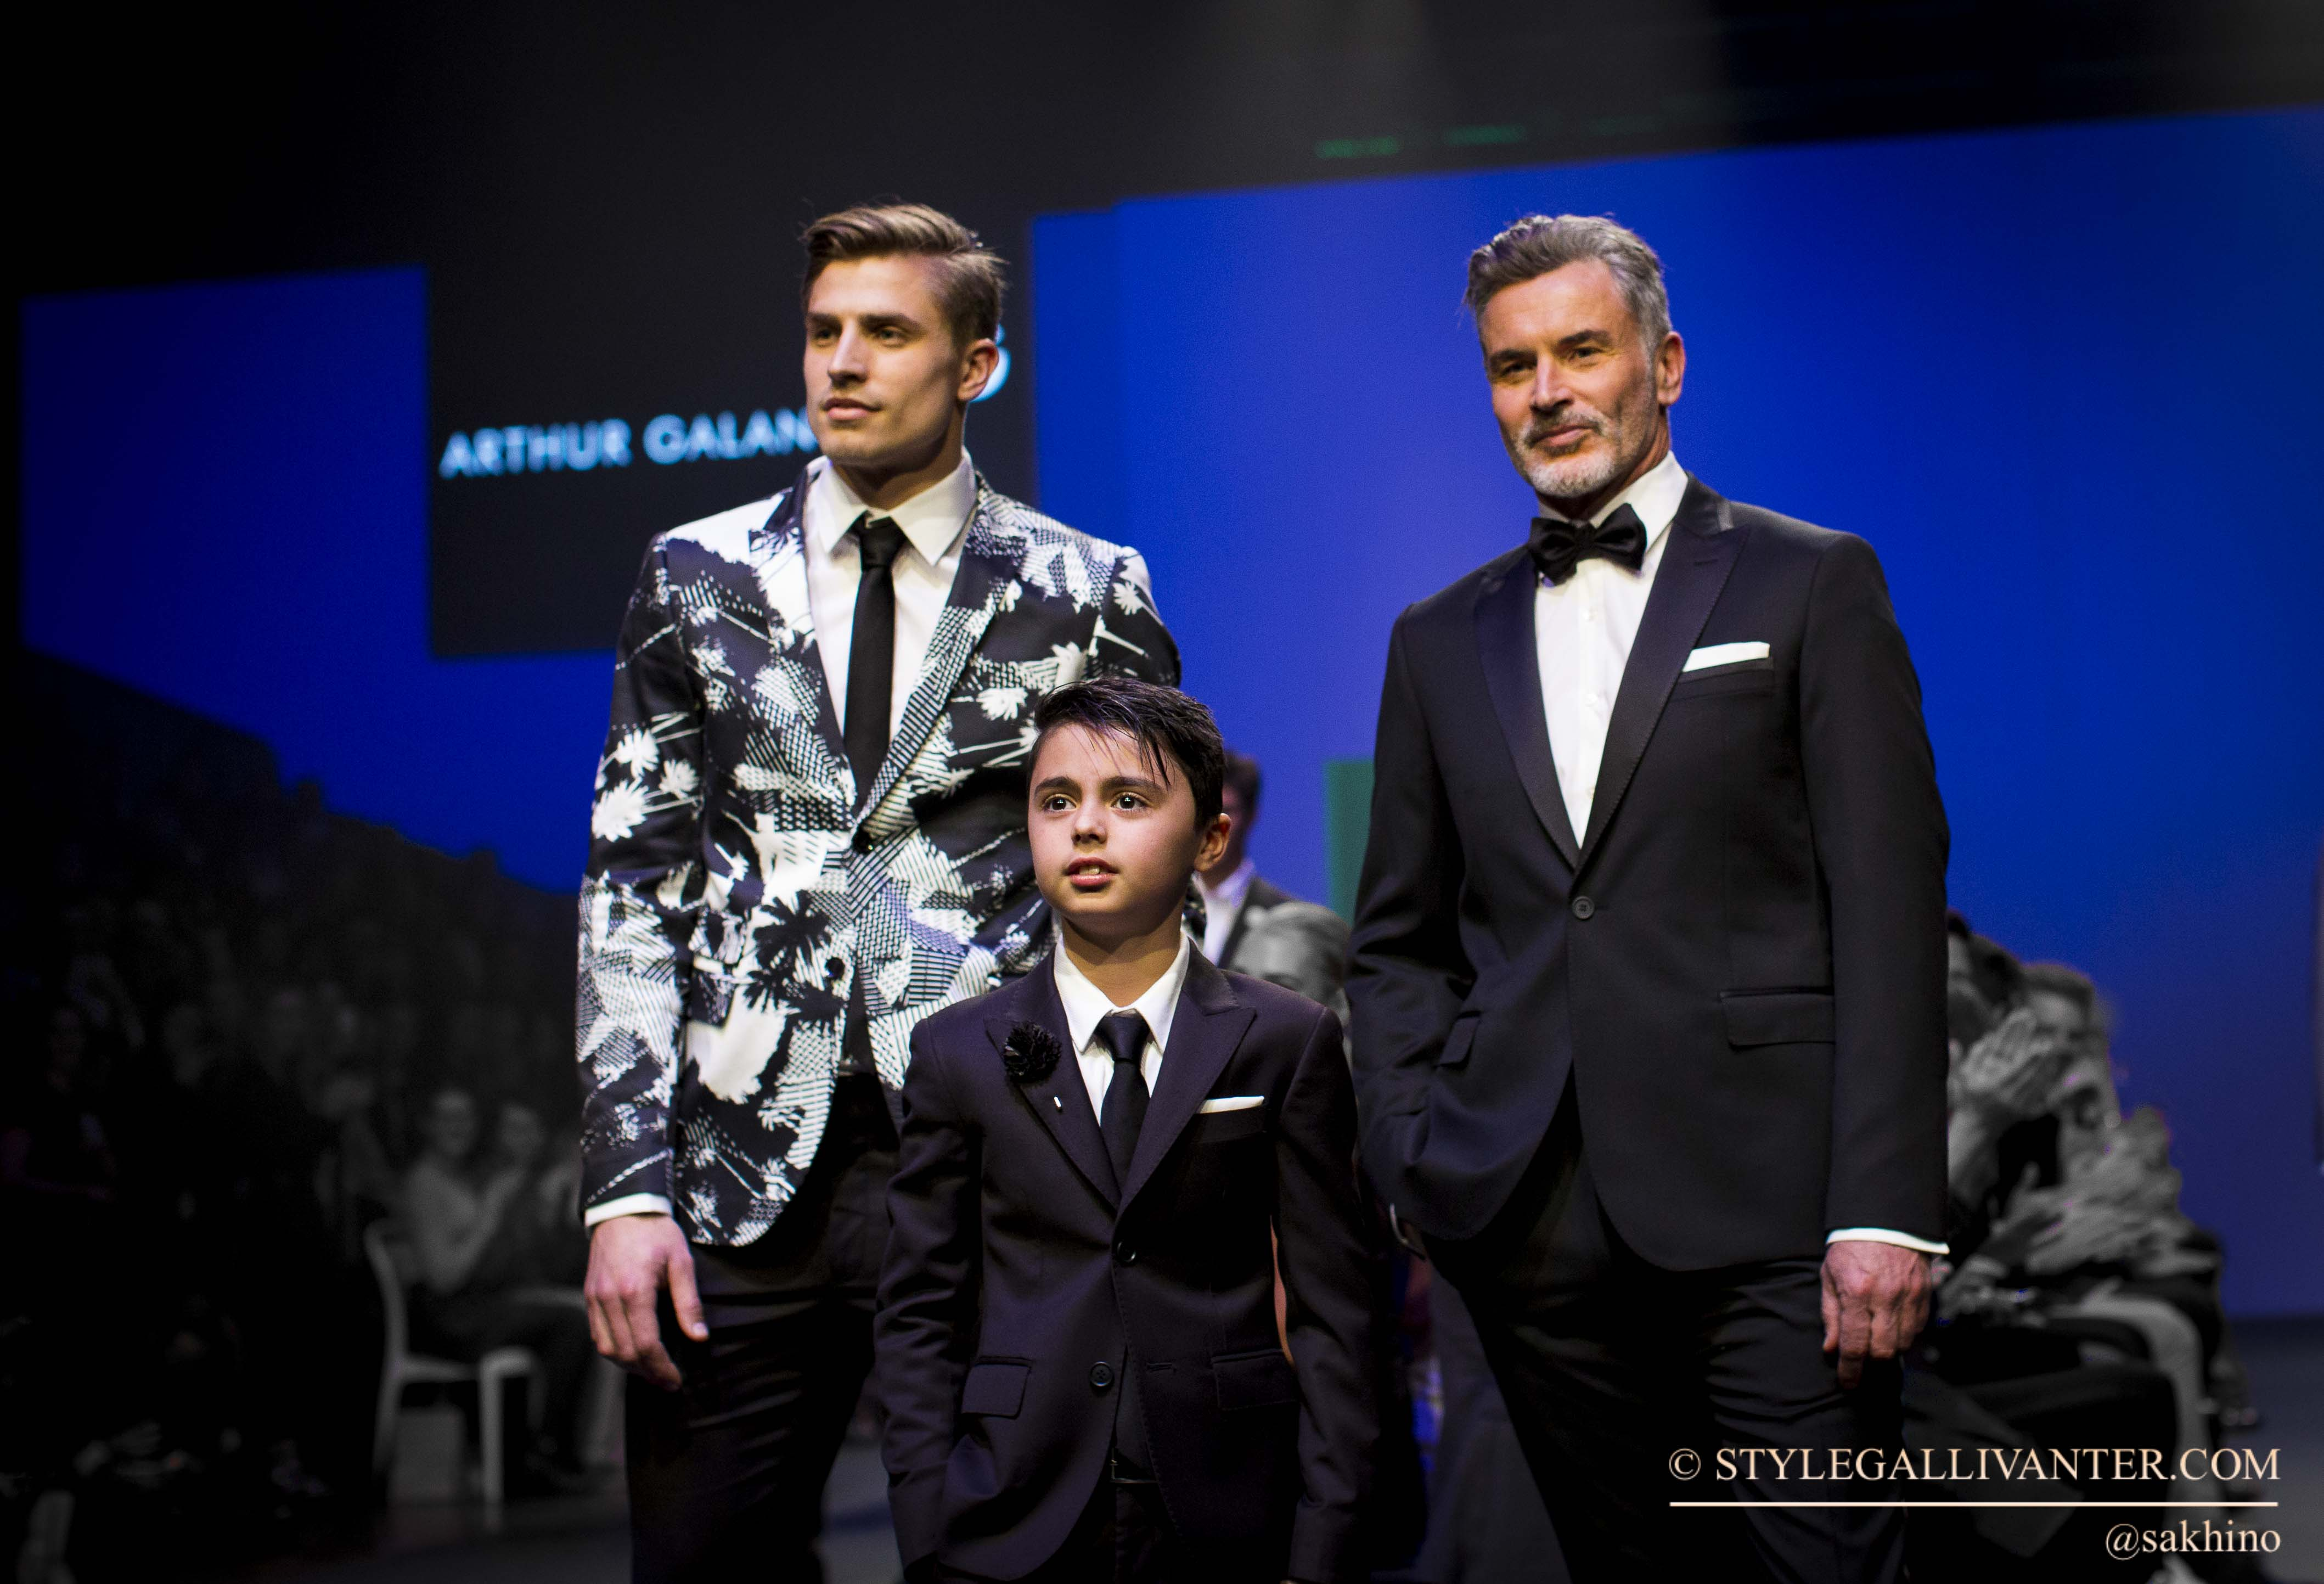 msfw15-mr-runway_msfw2015mr_msfw2015-mr-runway_msfw-fashion-influencers-2